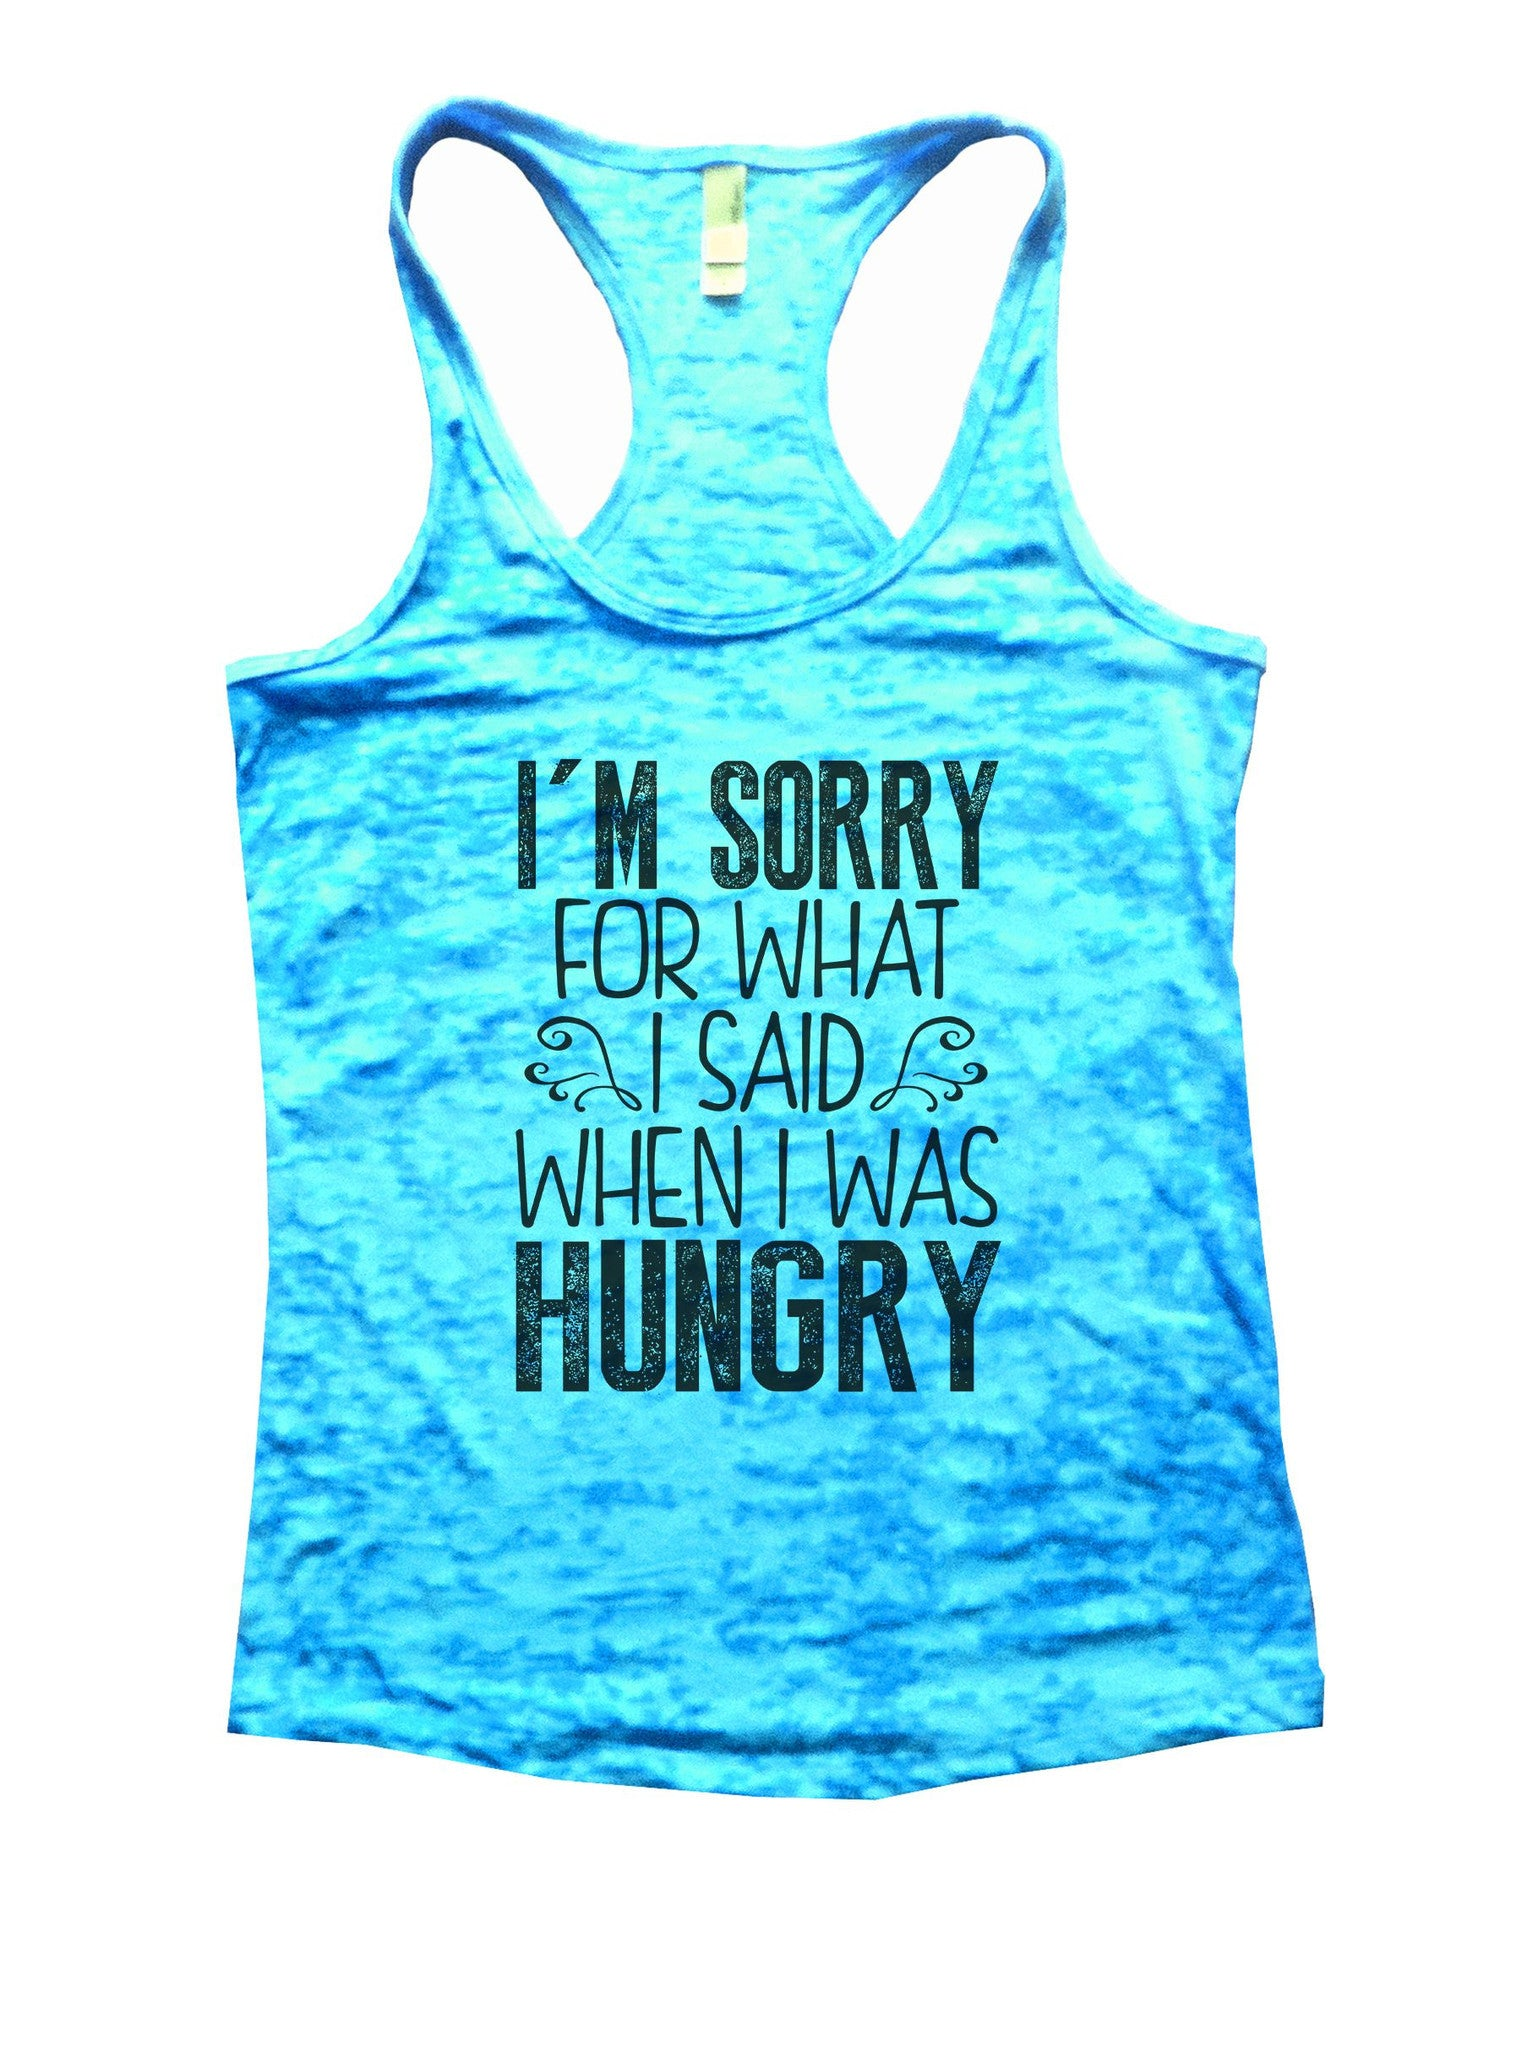 I'm Sorry For What I Said When I Was Hungry Burnout Tank Top By BurnoutTankTops.com - 952 - Funny Shirts Tank Tops Burnouts and Triblends  - 4